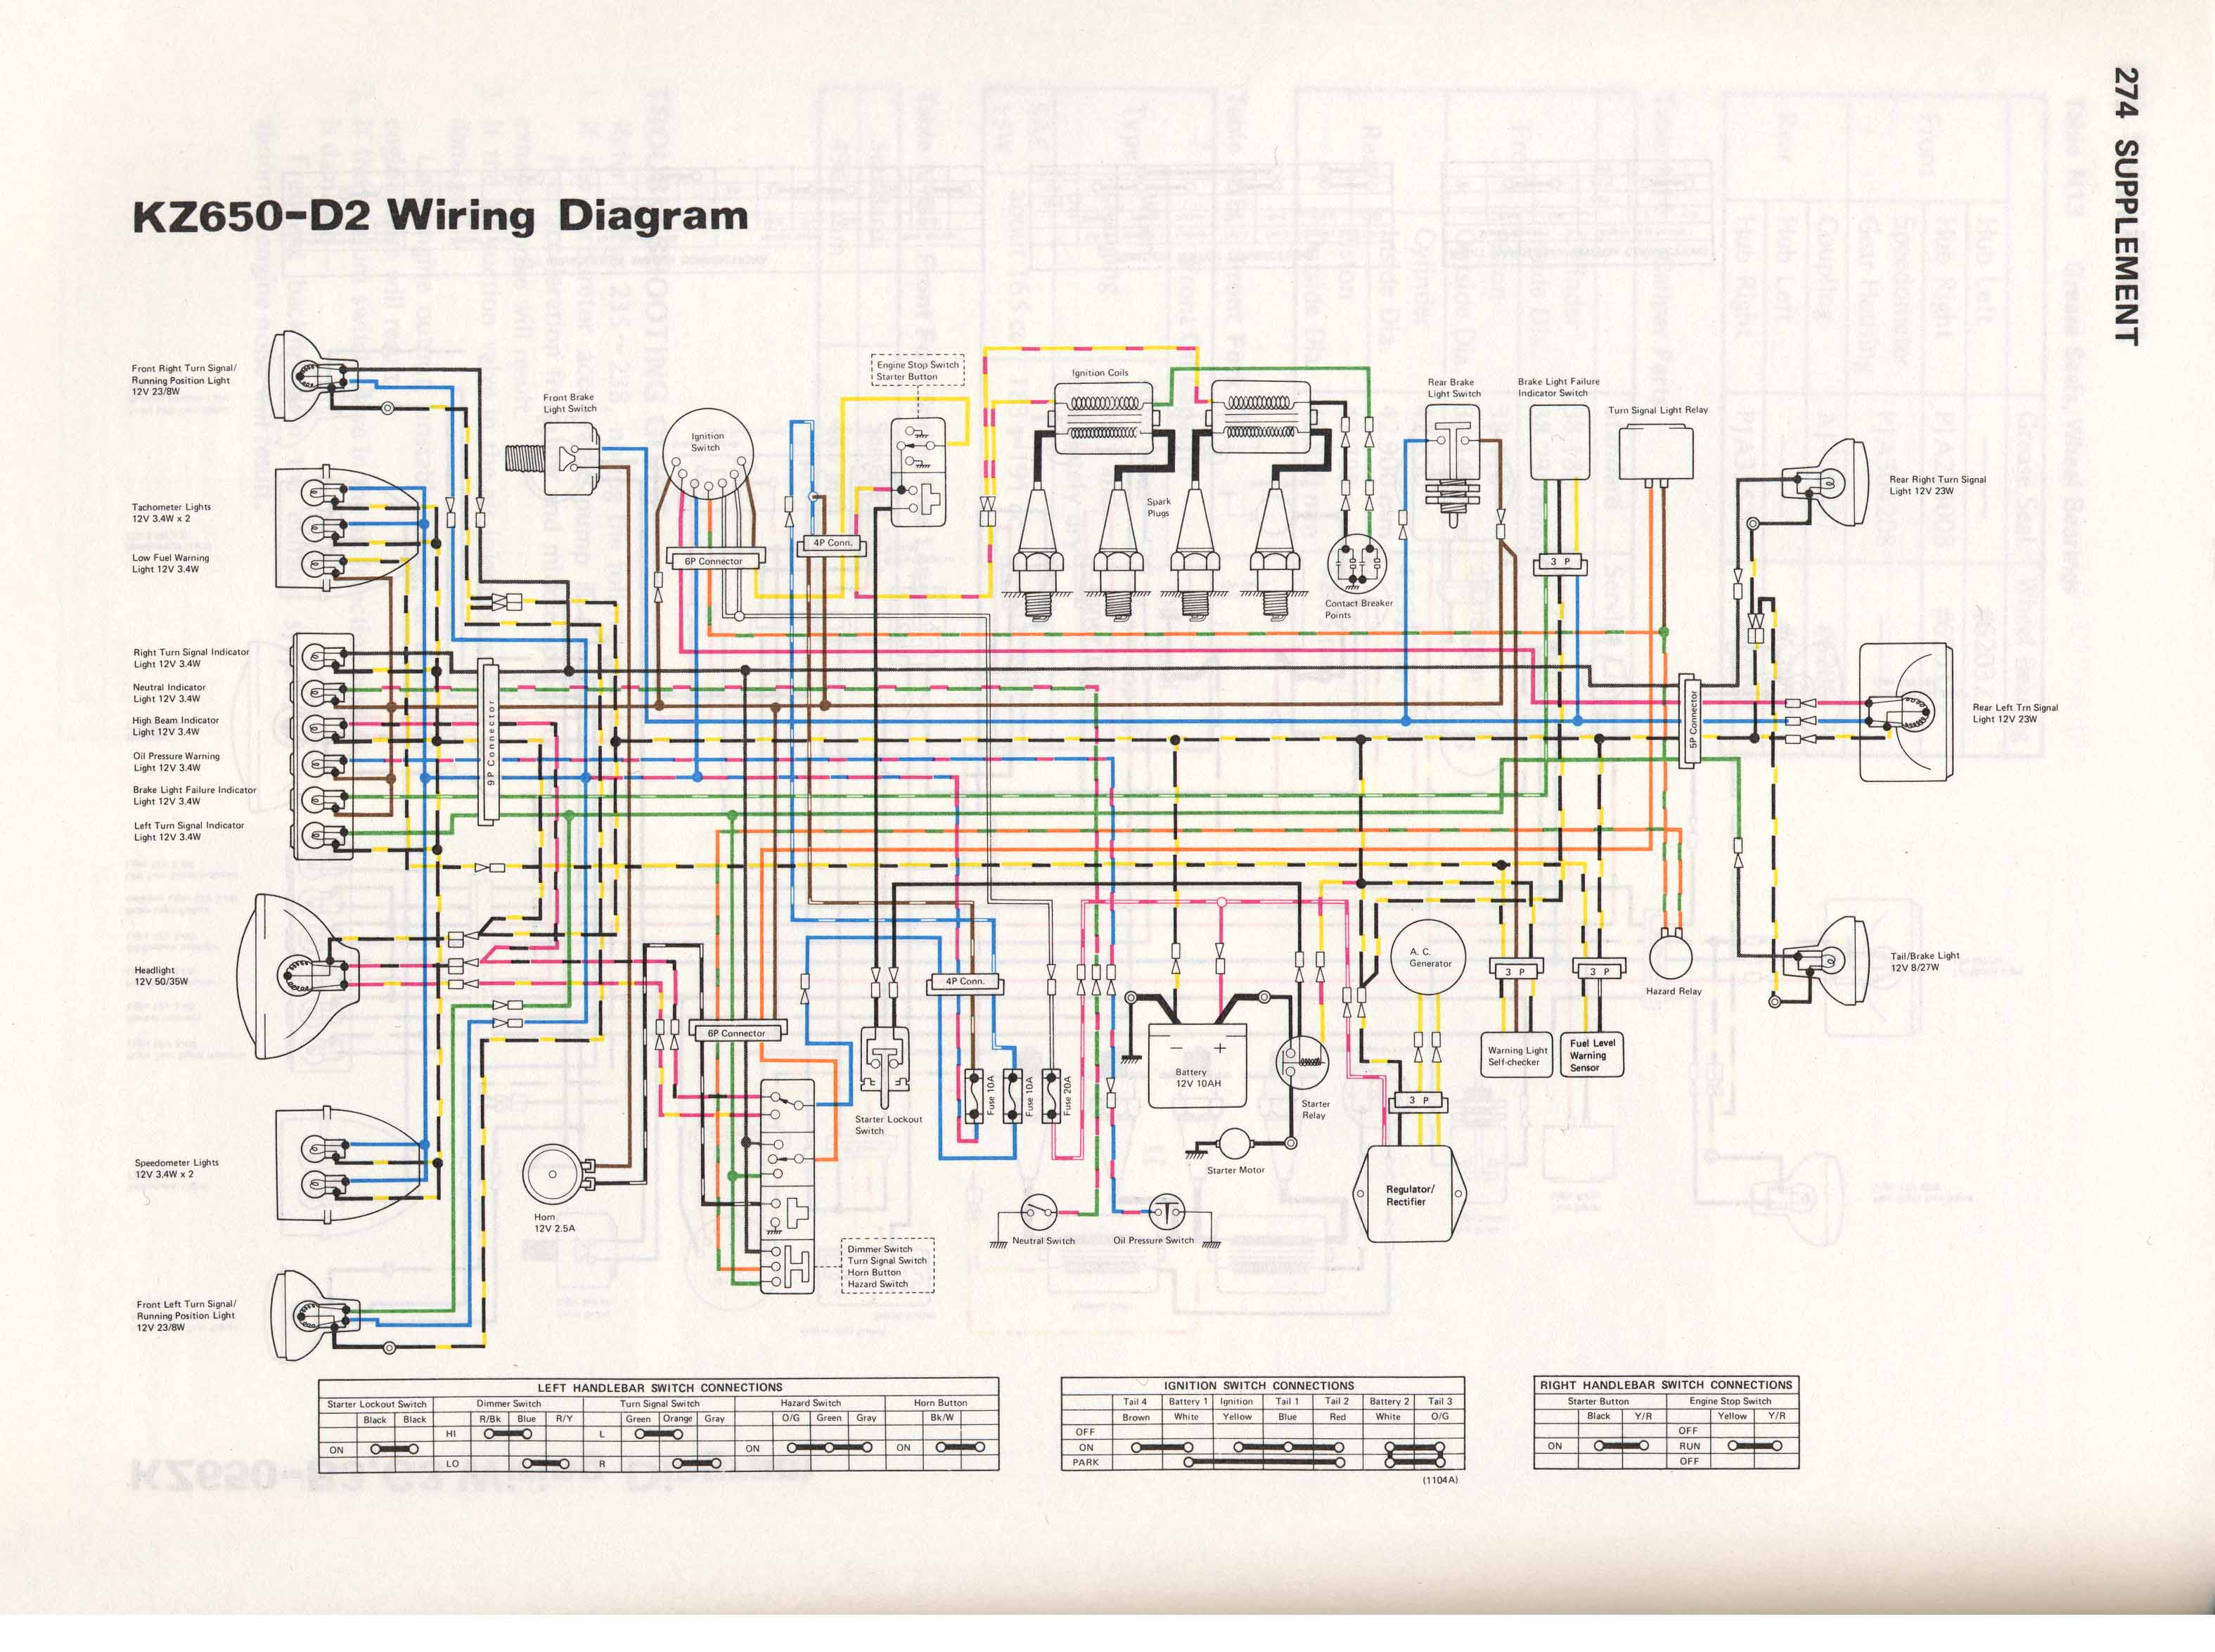 KZ650 D2 husqvarna wiring diagram husqvarna wiring diagram cv15s motor  at edmiracle.co